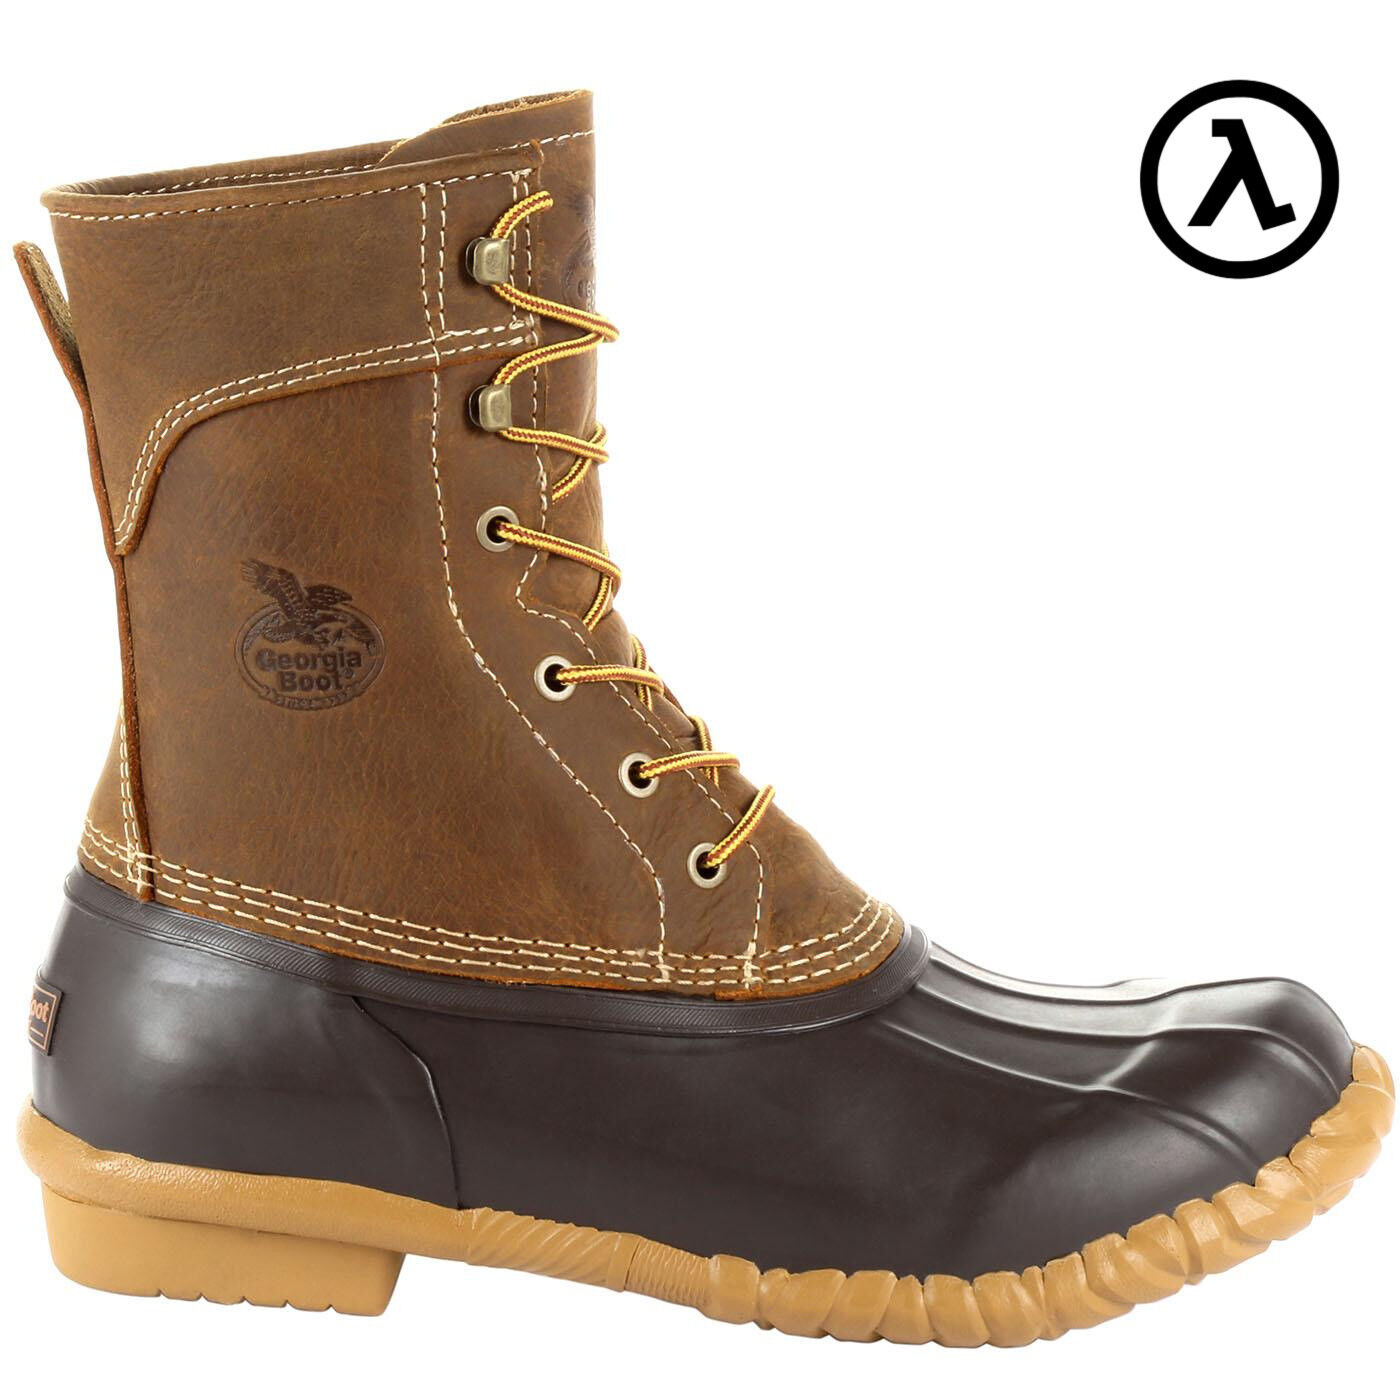 GEORGIA MARSHLAND UNISEX 8  DUCK BOOTS GB00275  ALL SIZES - NEW